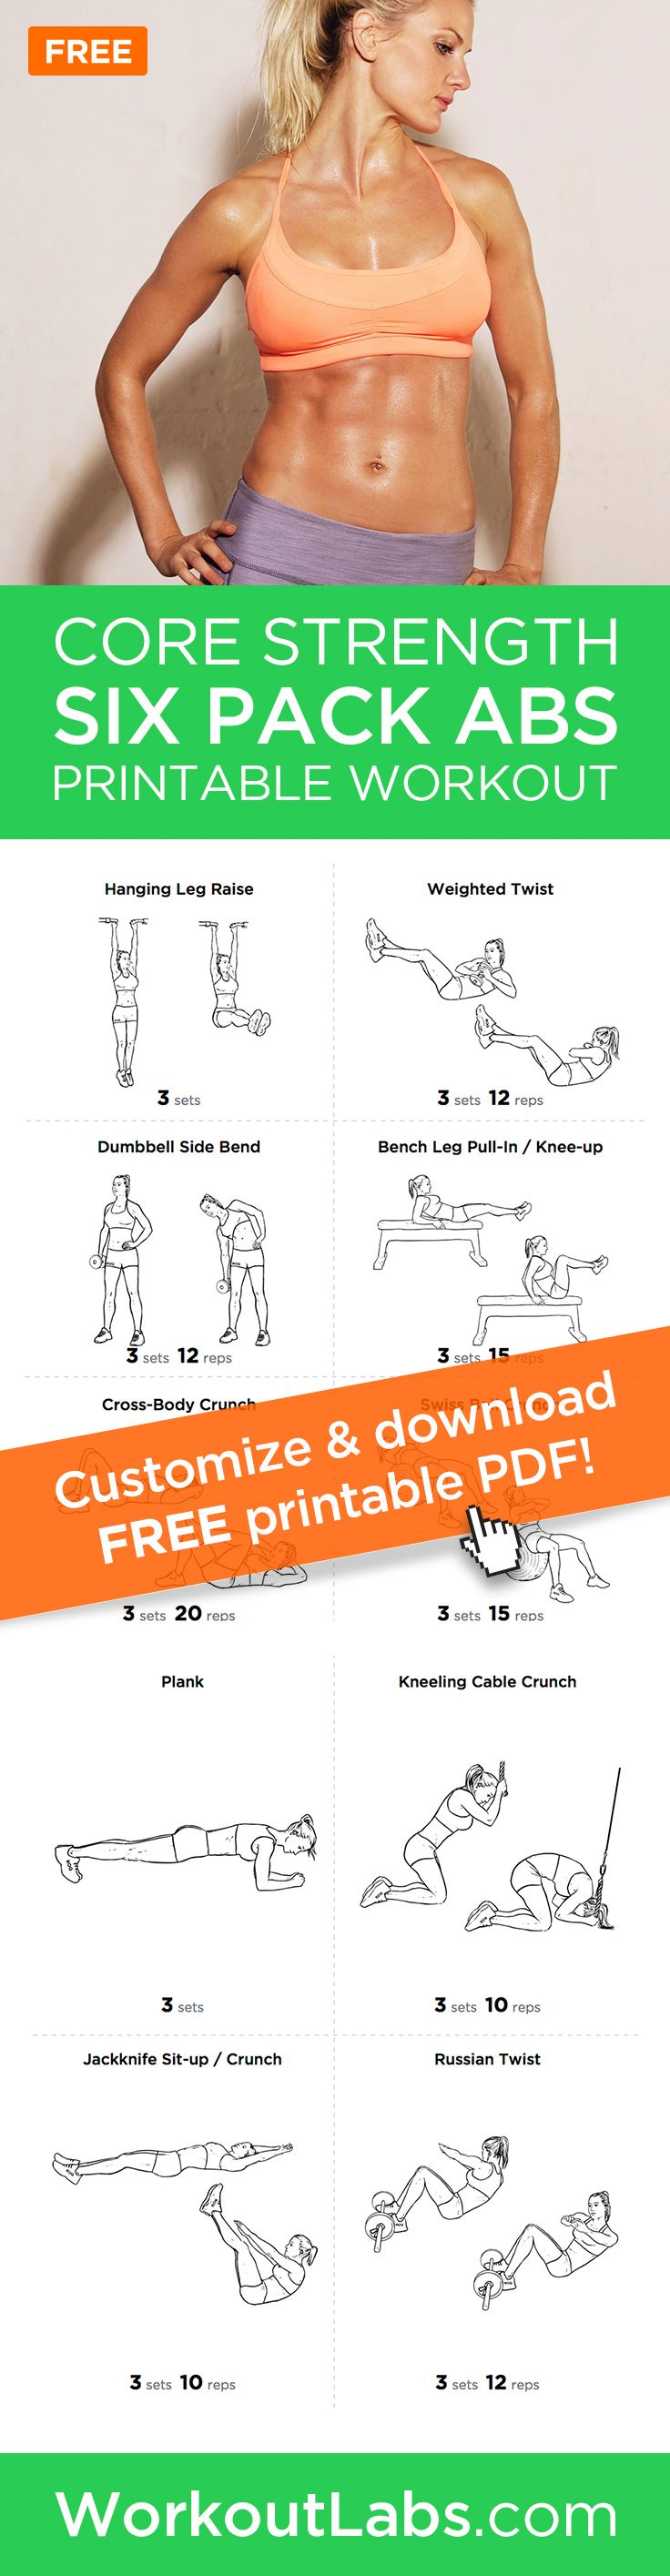 Six Pack Abs Core Strength Workout Routine for Men and Women –Want to get that perfect six pack? Try this comprehensive abdominal gym workout routine that will hit your upper and lower abs as well as obliques for a perfectly toned core.